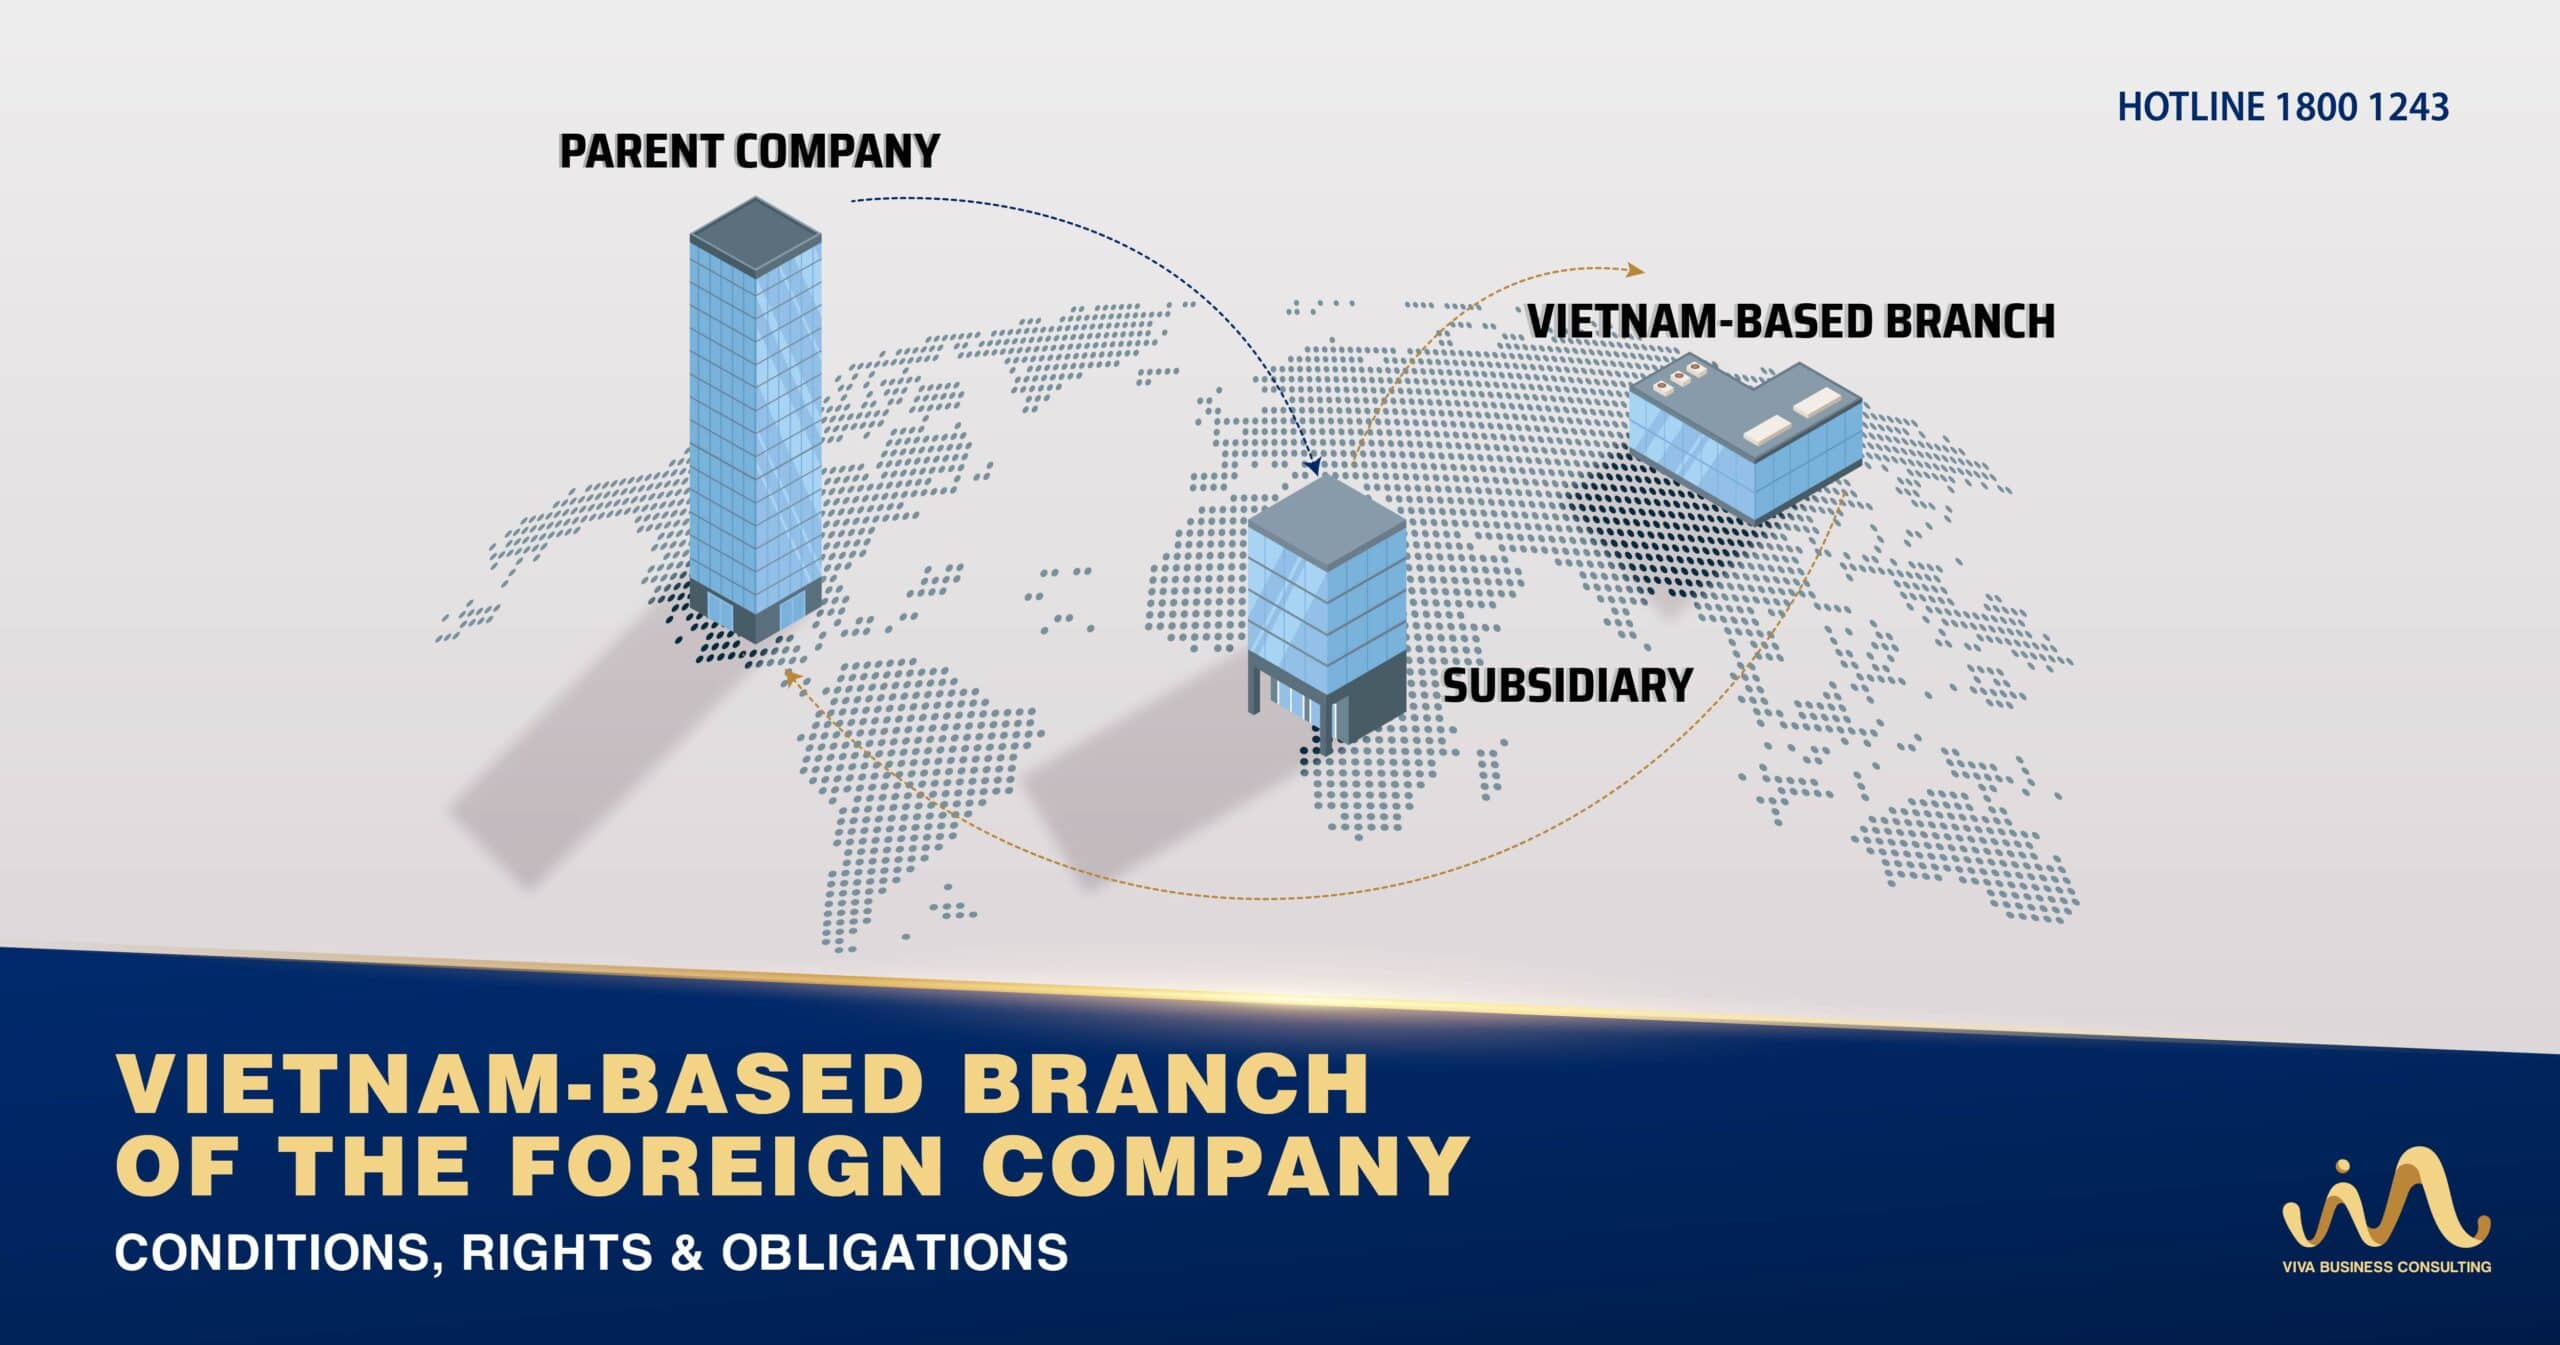 Vietnam-based branch of the foreign company